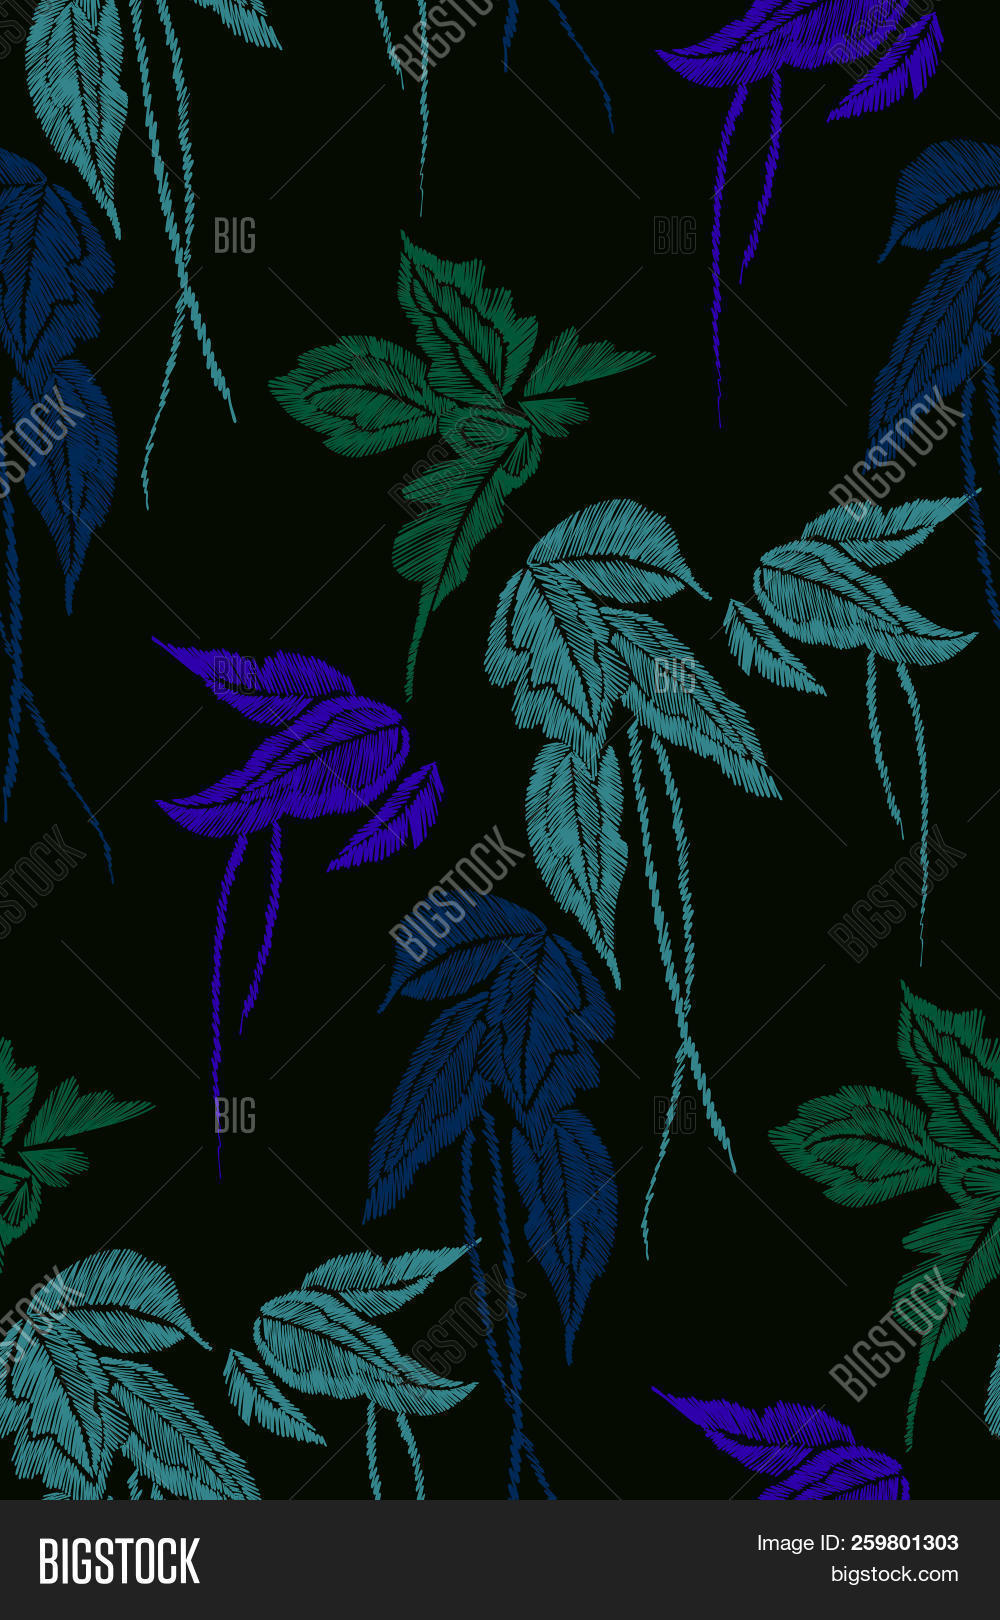 Tropical Leaves Seamless Background Pattern Vector Illustration Hand Drawn Embroidery Design Image Stock Photo 259801303 It's hard to choose just one type of tropical leaf, that's why we created a visual guide to help you determine your fan palms, with their wide leaf size and fun geometric pattern, are perfect. tropical leaves seamless background